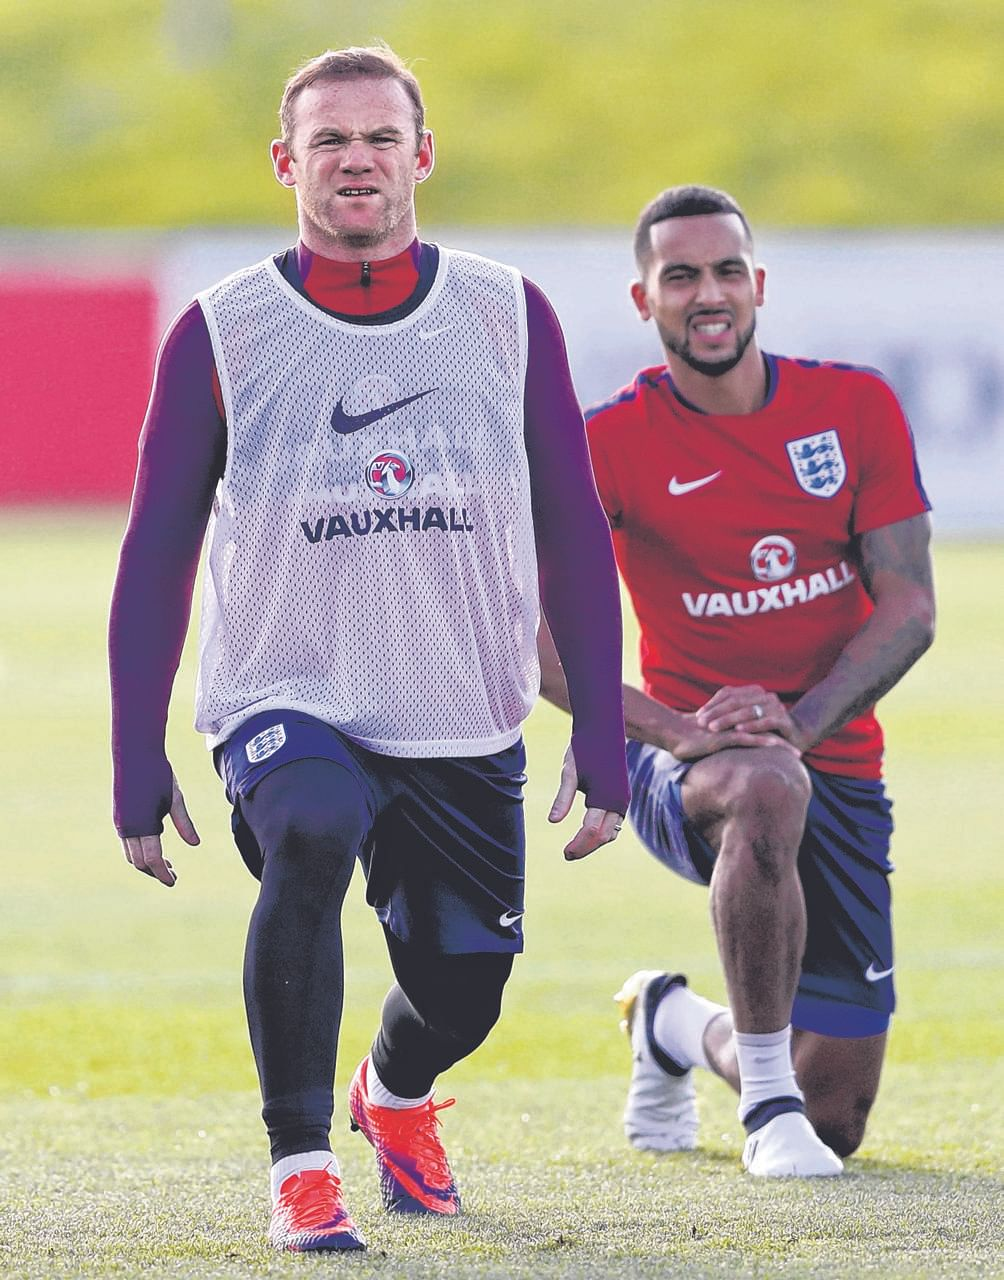 While Wayne Rooney (left) struggles to adapt to a different role on the pitch for England and Manchester United, Theo Walcott is trying to fend off the onset of numerous injuries that have stalled his career.